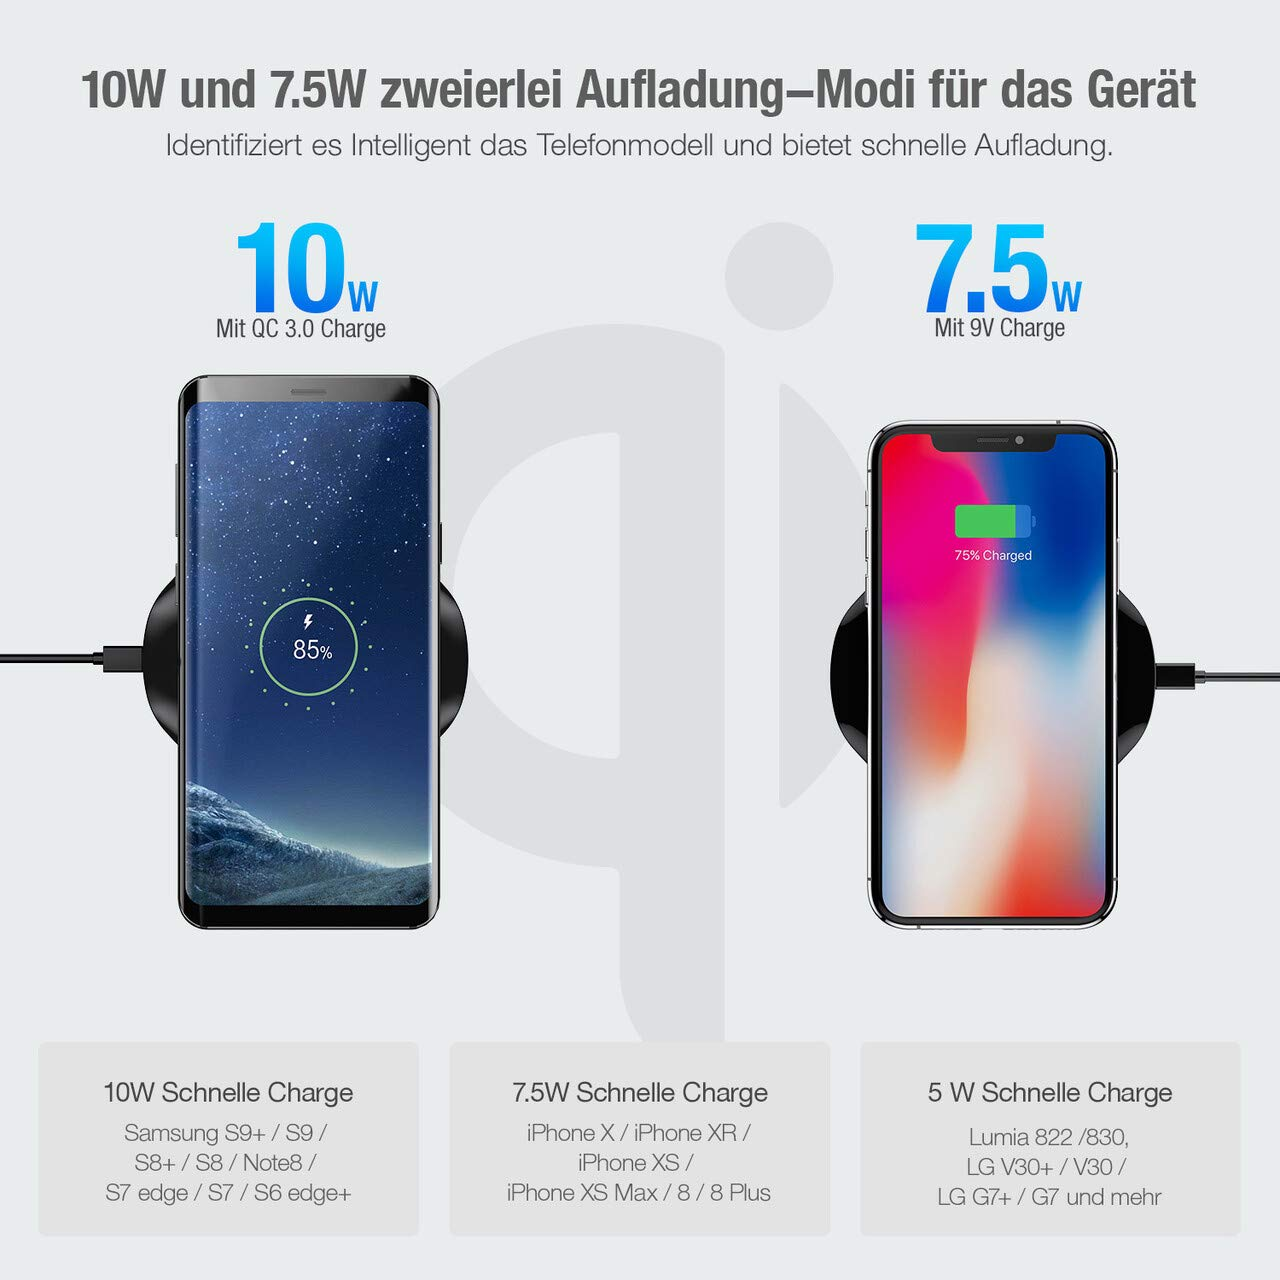 POWERADD Wireless Charger 10W Kabellose Ladegerät qi ladestation für Samsung Galaxy S9/ S8 Plus /S8 / S7 / S7 Edge / S6 Nexus, Nokia Lumia, LG, 7.5W für iPhone XS/XR/X/ 8/8 Plus